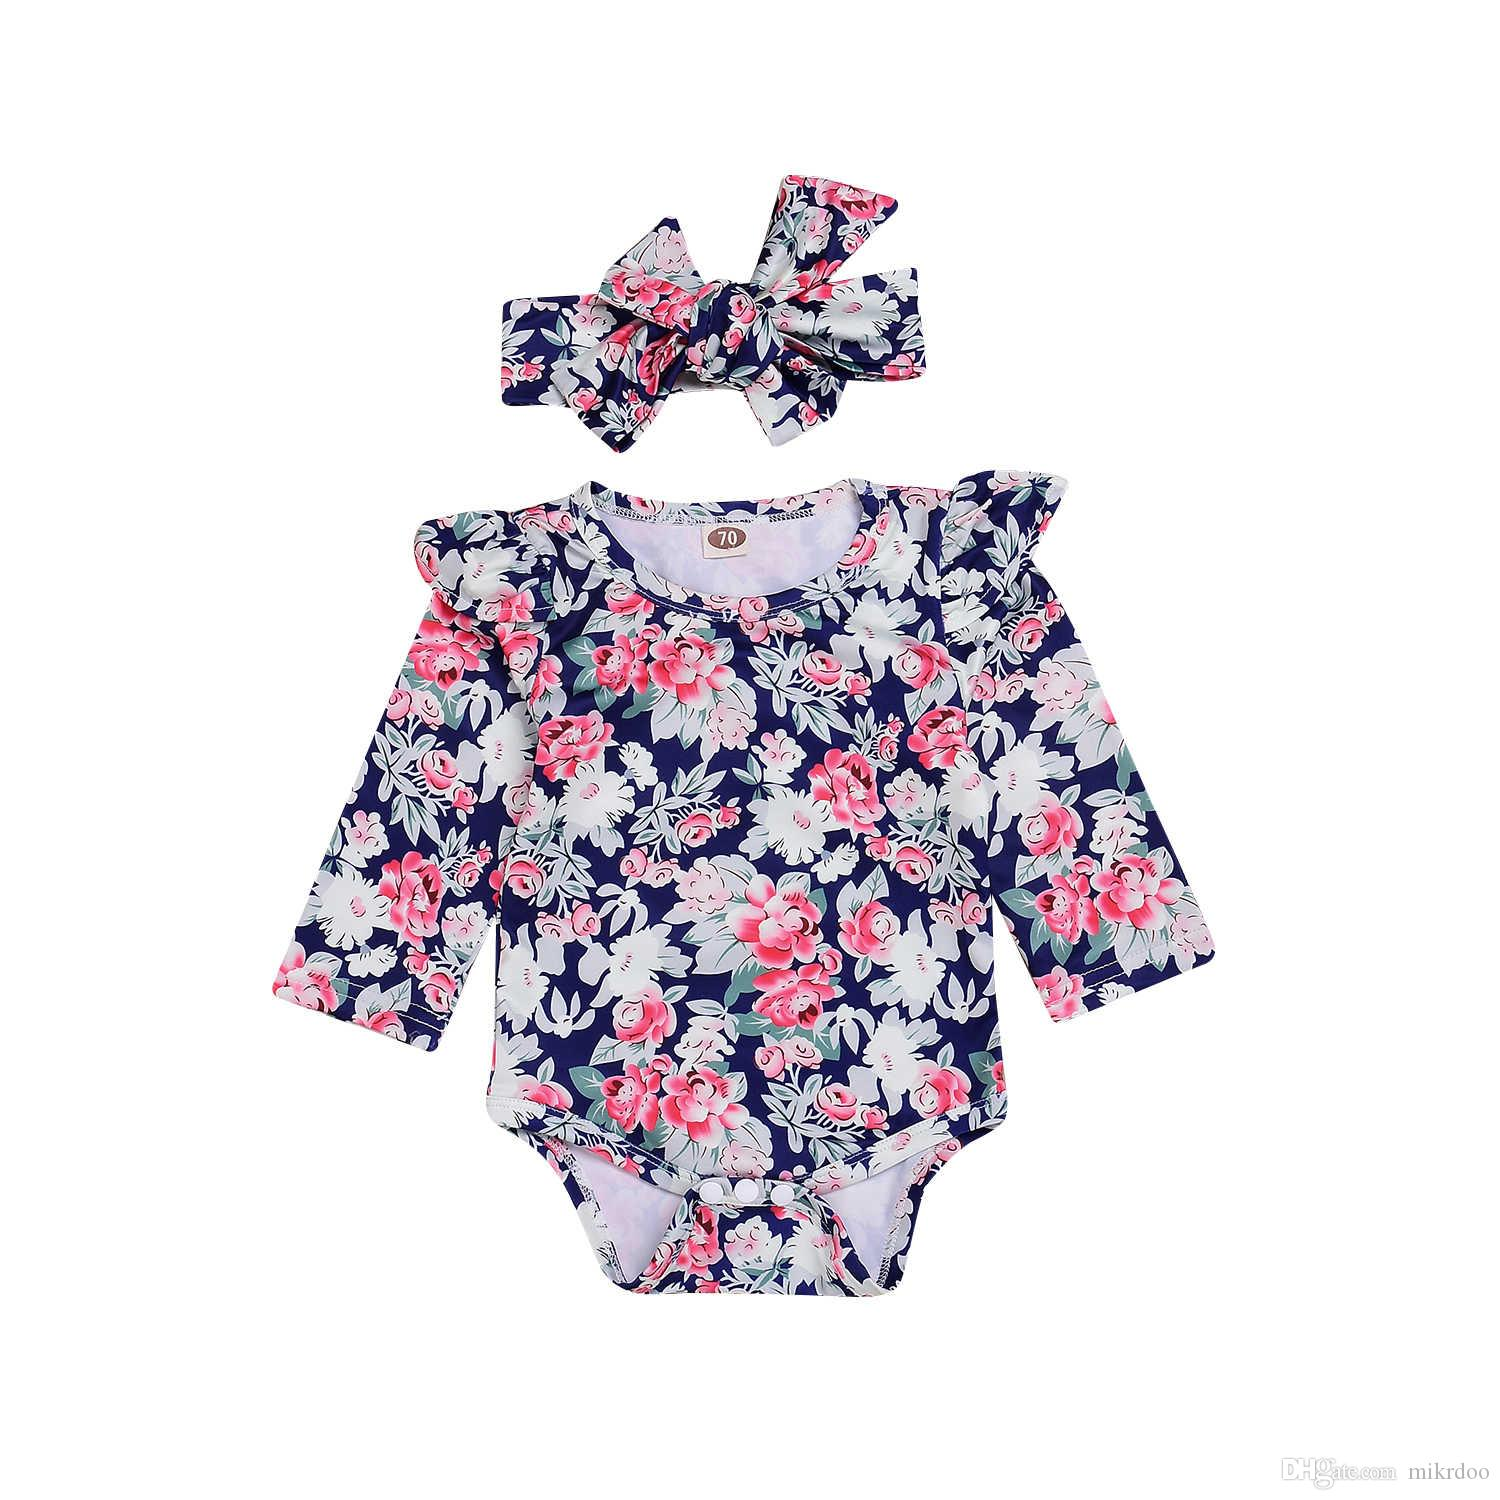 f462886800f1 2019 Mikrdoo Cute Newborn Baby Girl Floral Romper Jumpsuit Set Long Sleeve  Romper With Headband Kids Clothing Set From Mikrdoo